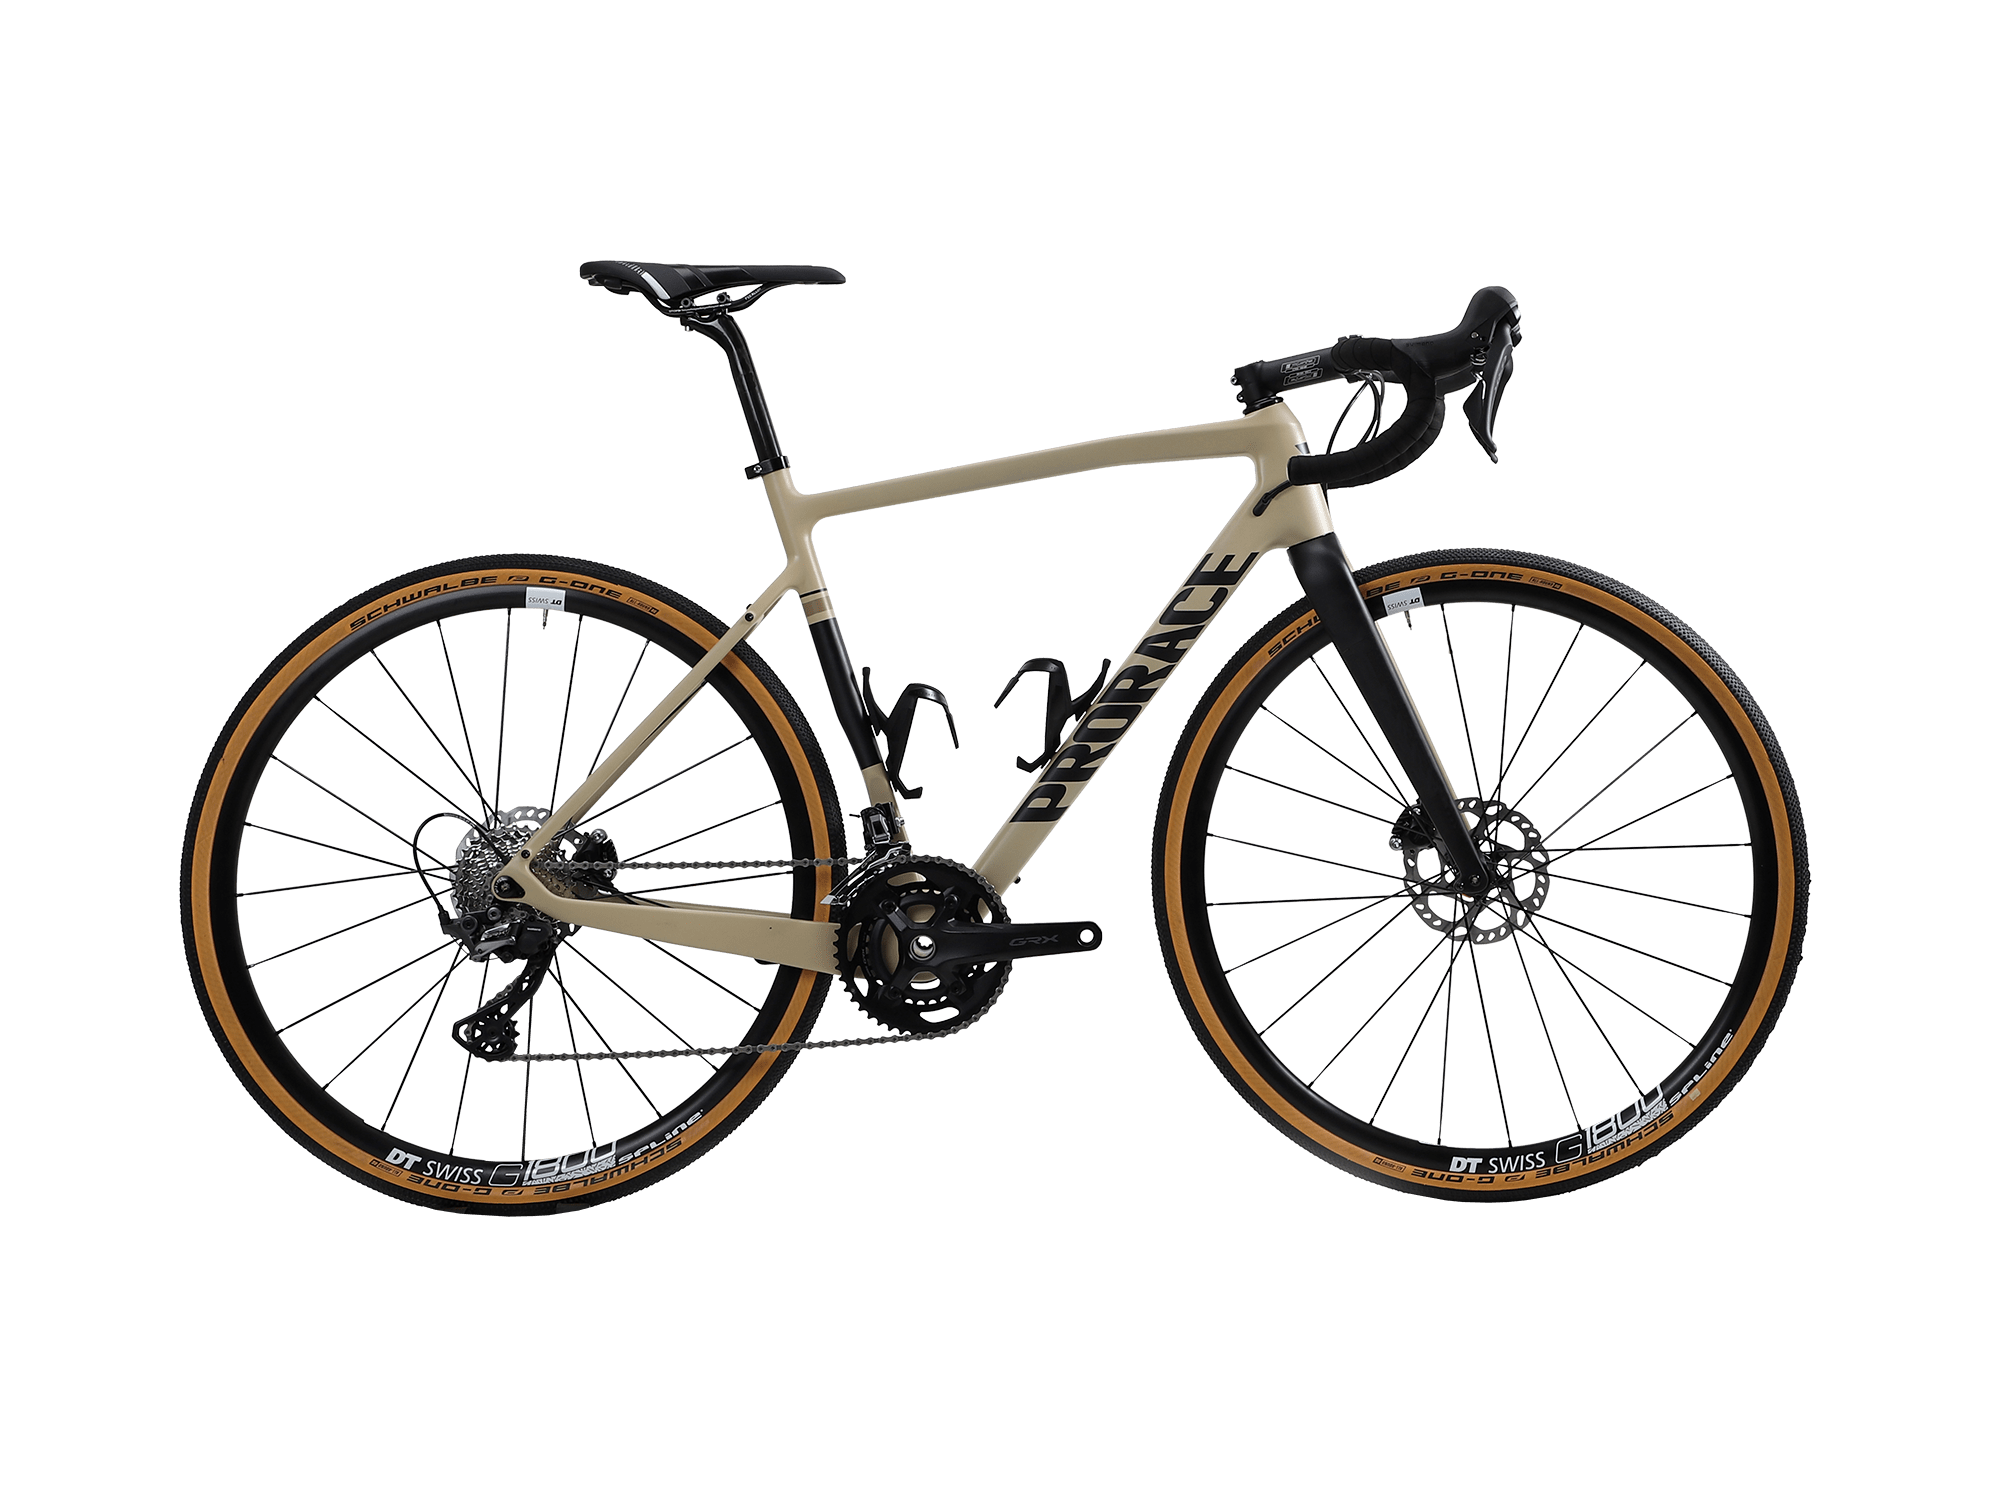 Desert Fox_Gravel bikes